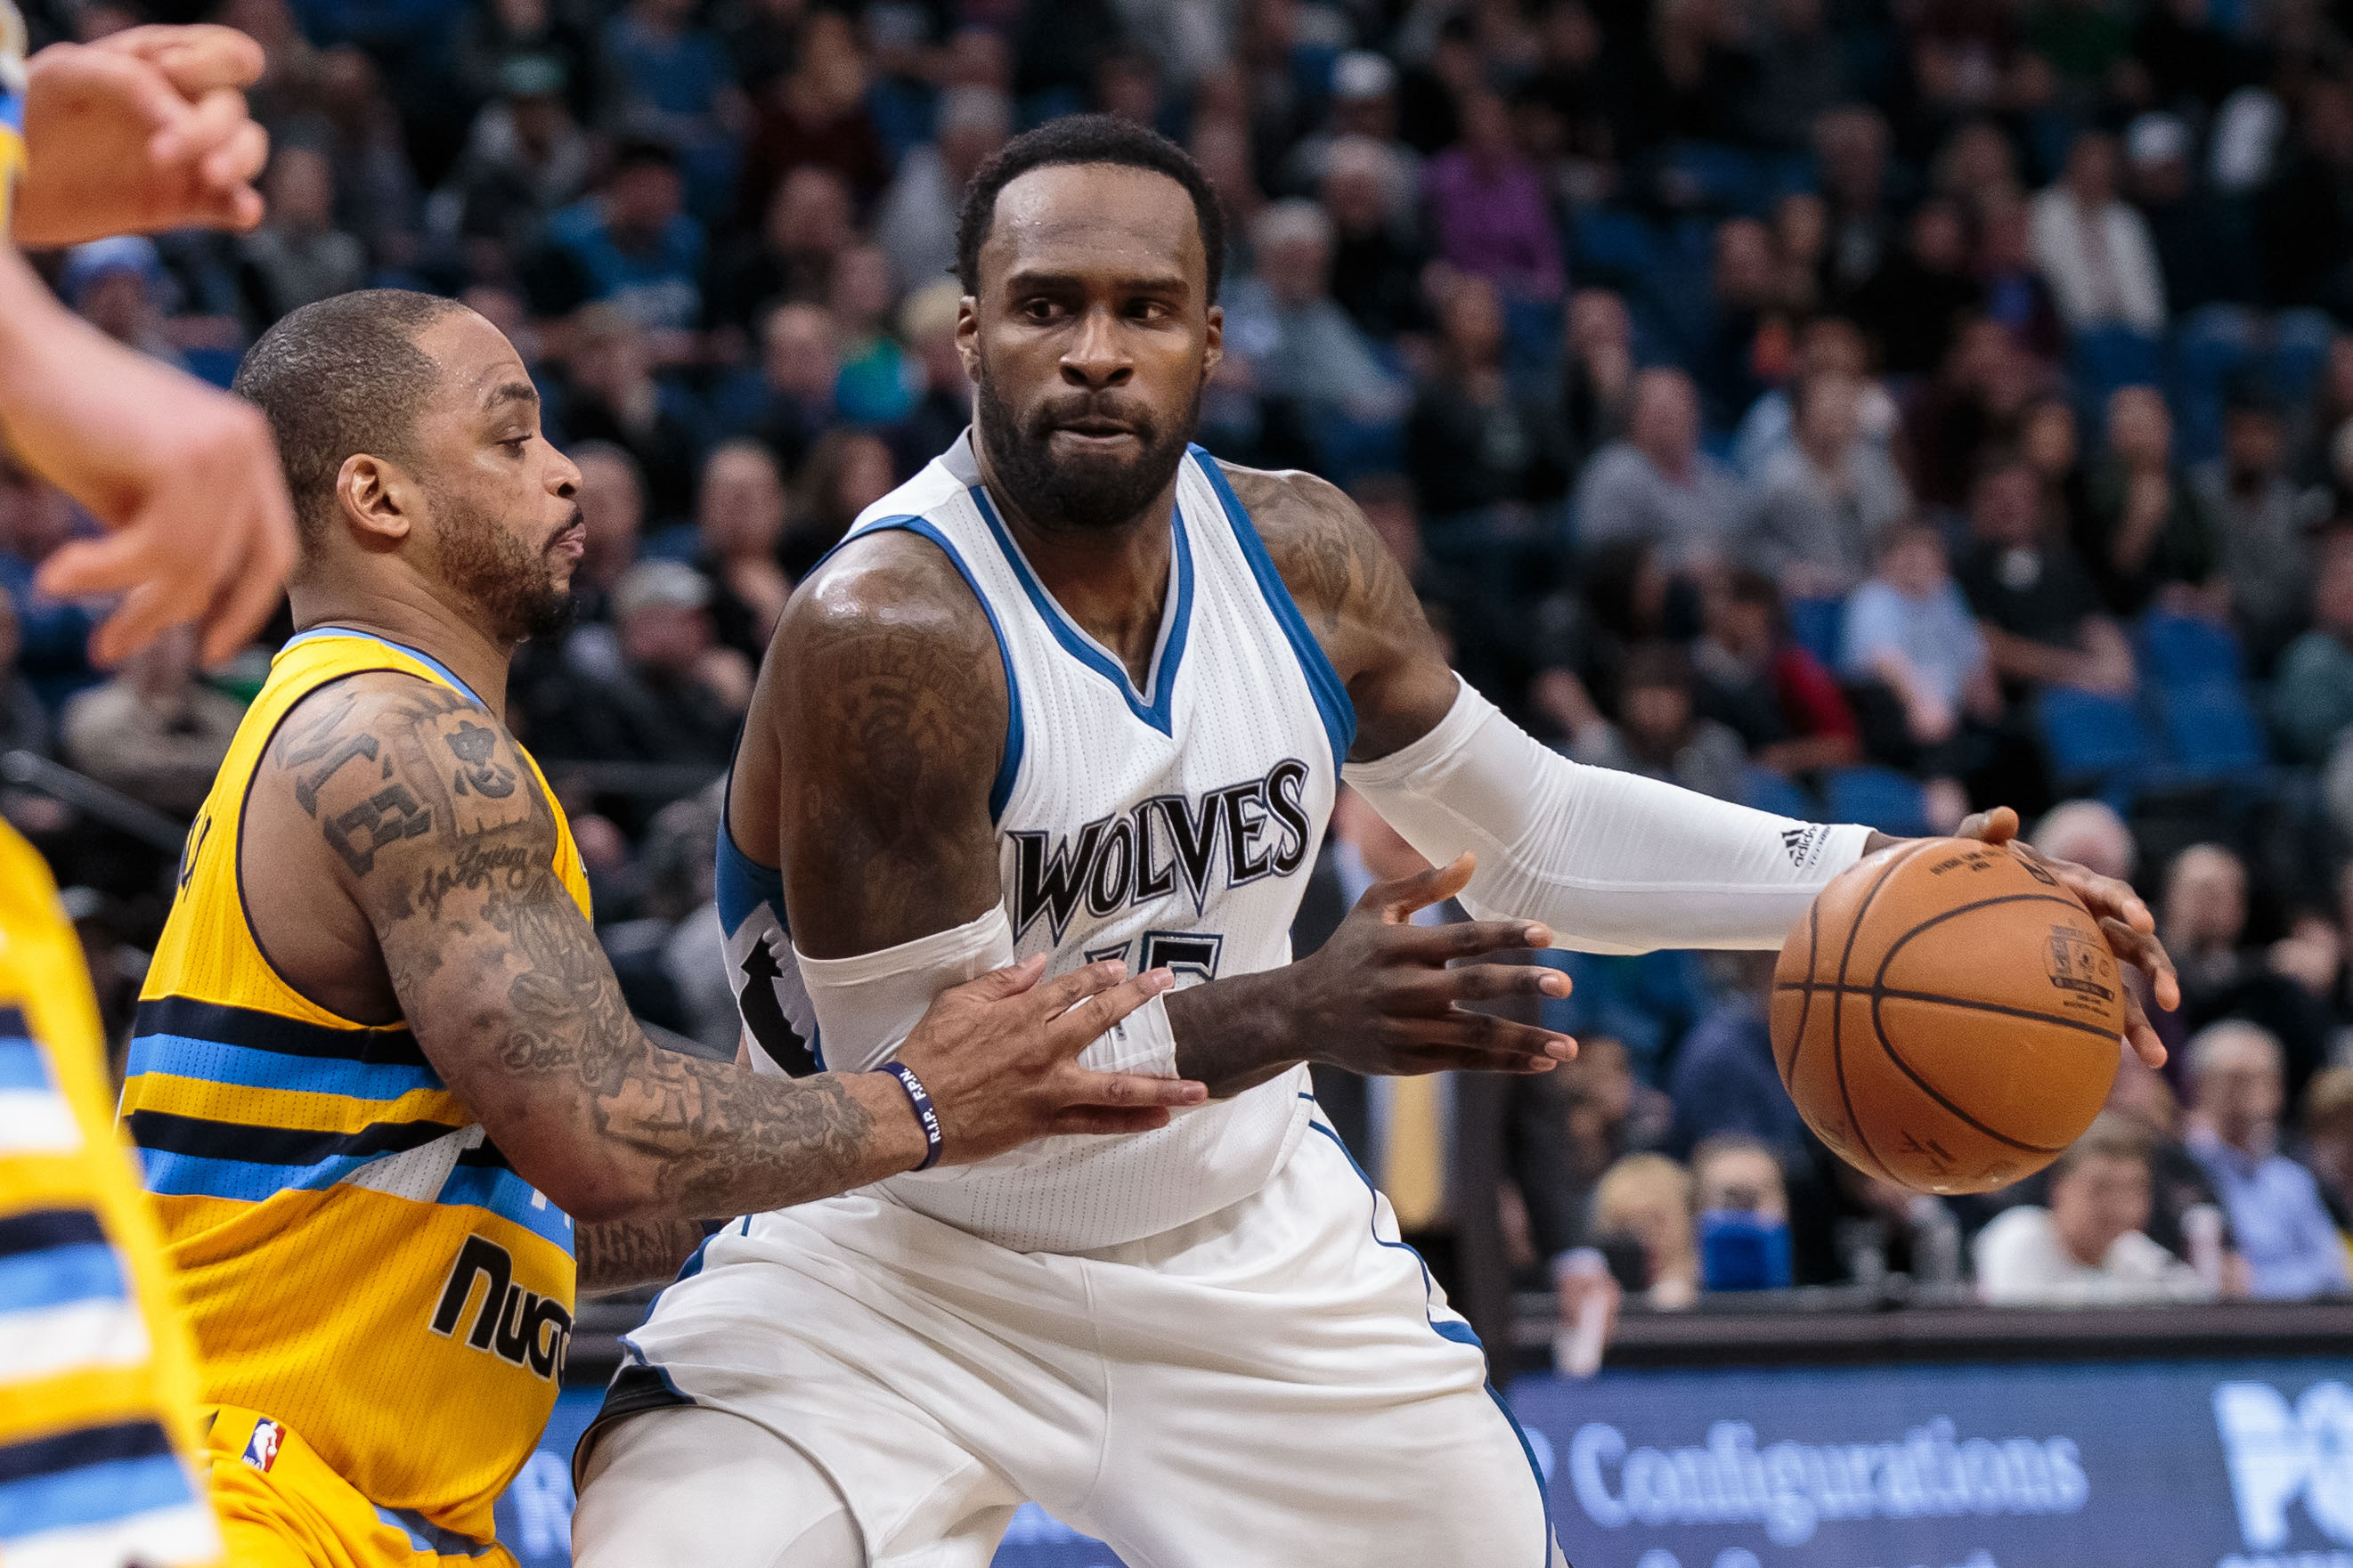 9838629-nba-denver-nuggets-at-minnesota-timberwolves